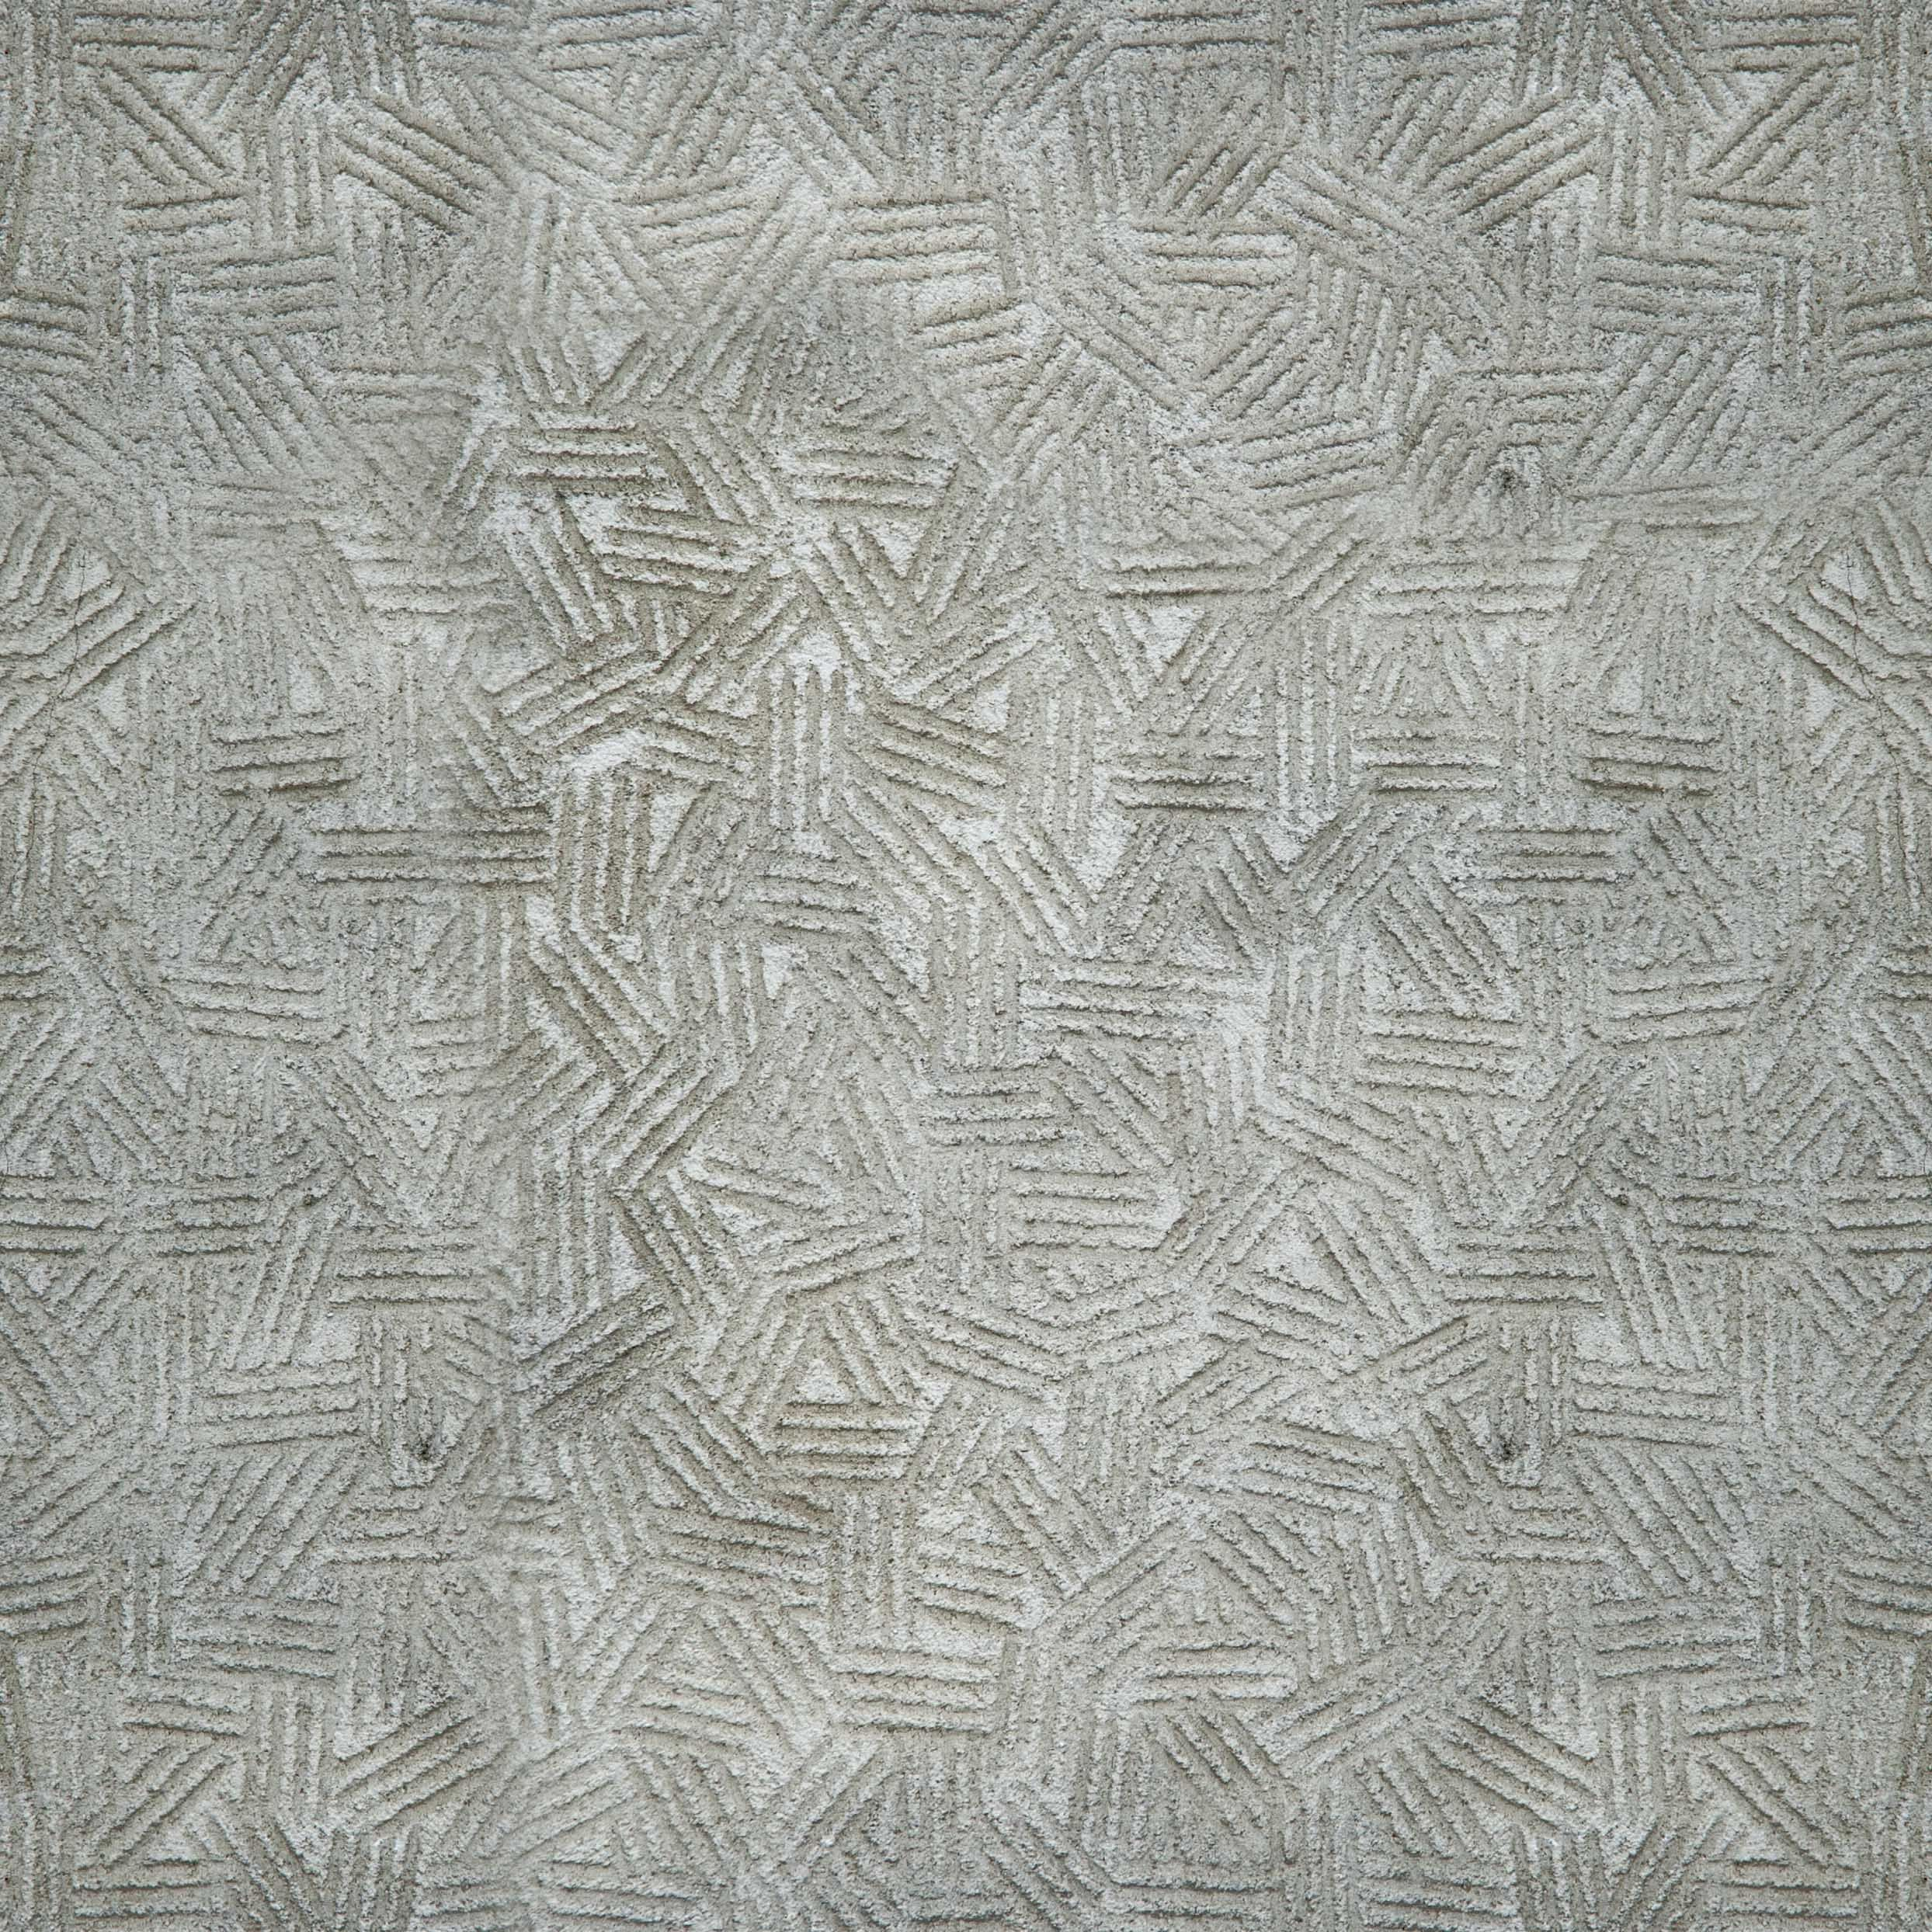 Concrete Wall Background Image